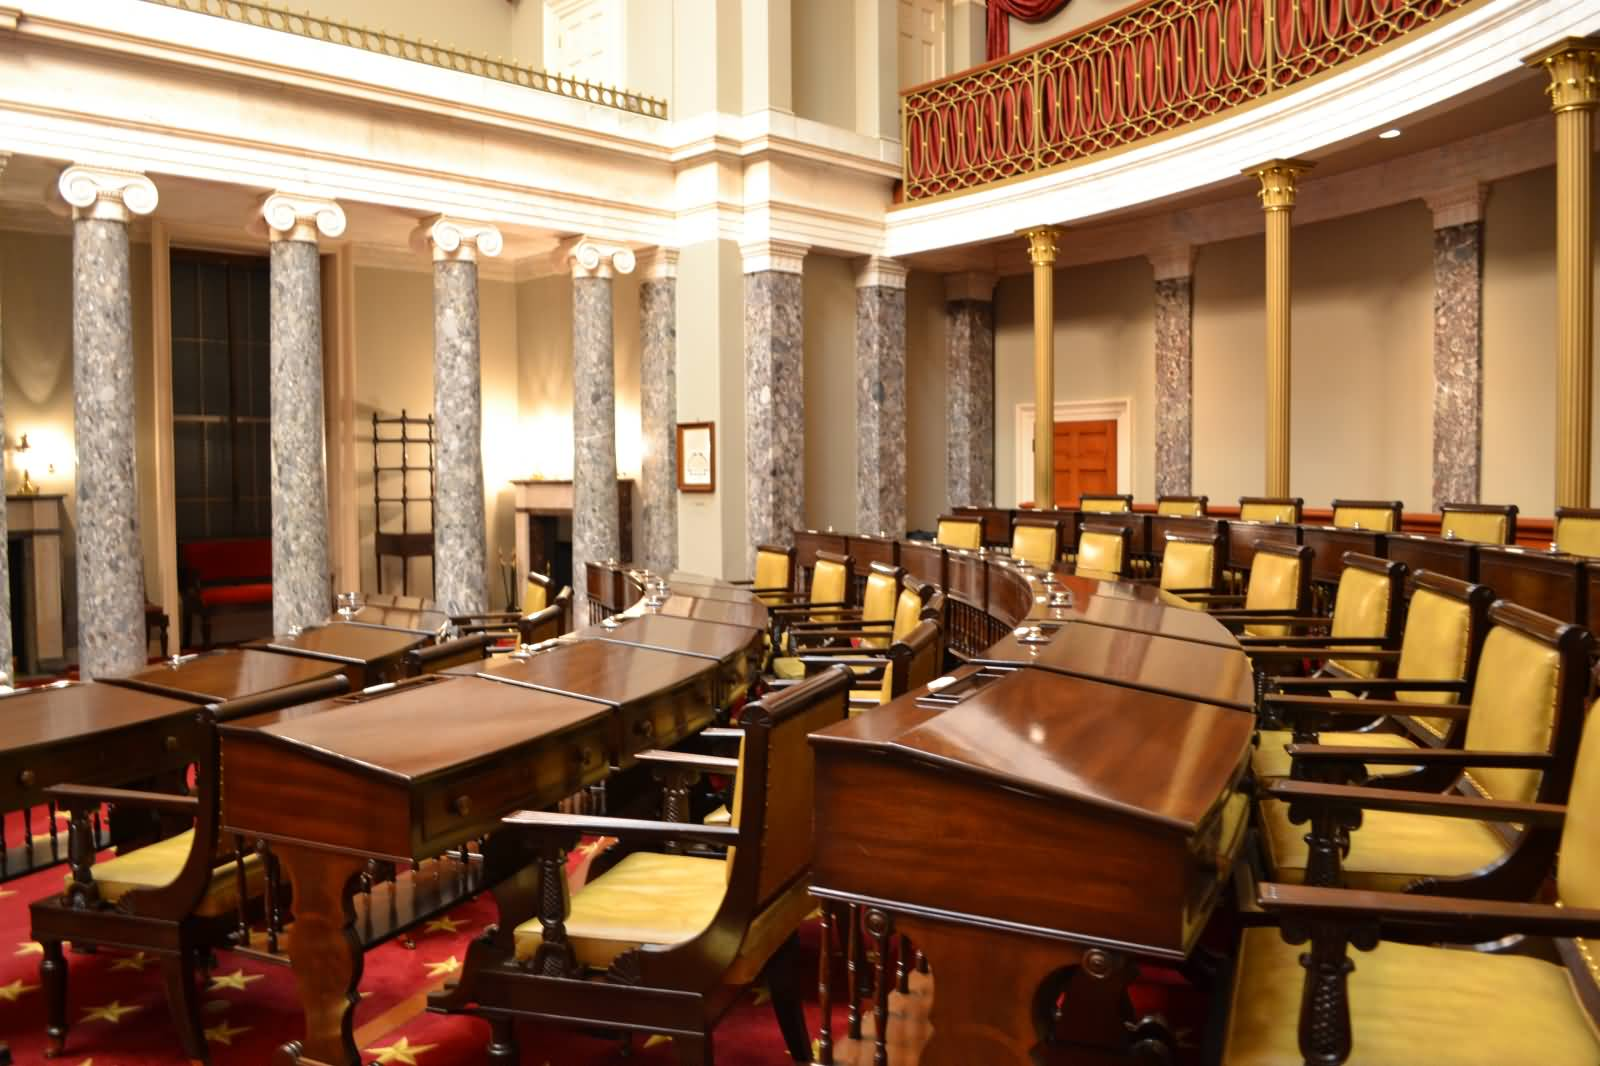 Inside The United States Capitol Old Senate Chambers Picture